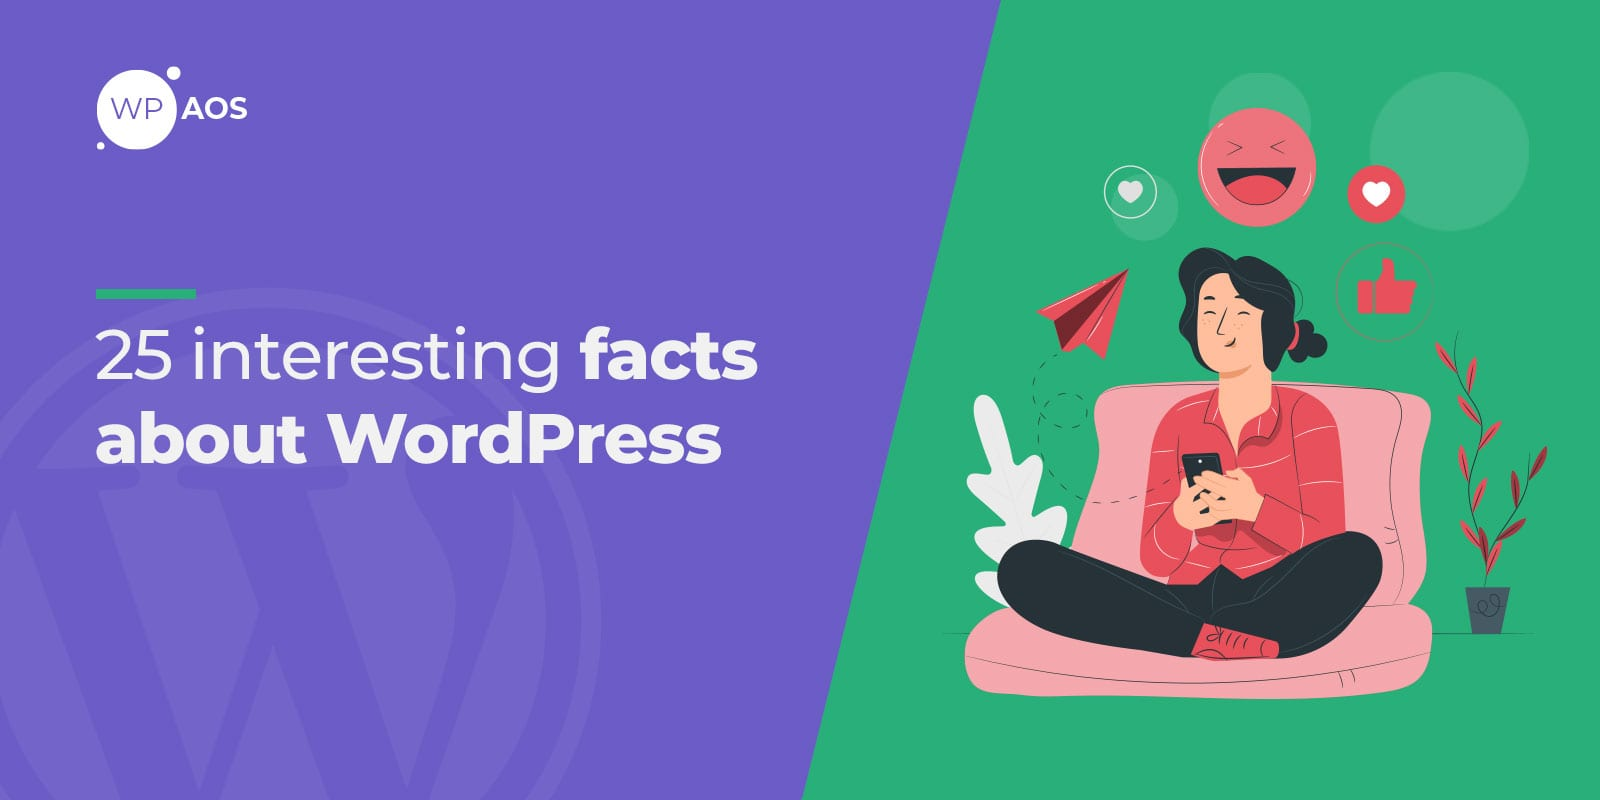 interesting facts, wordpress, woocommerce, wpaos